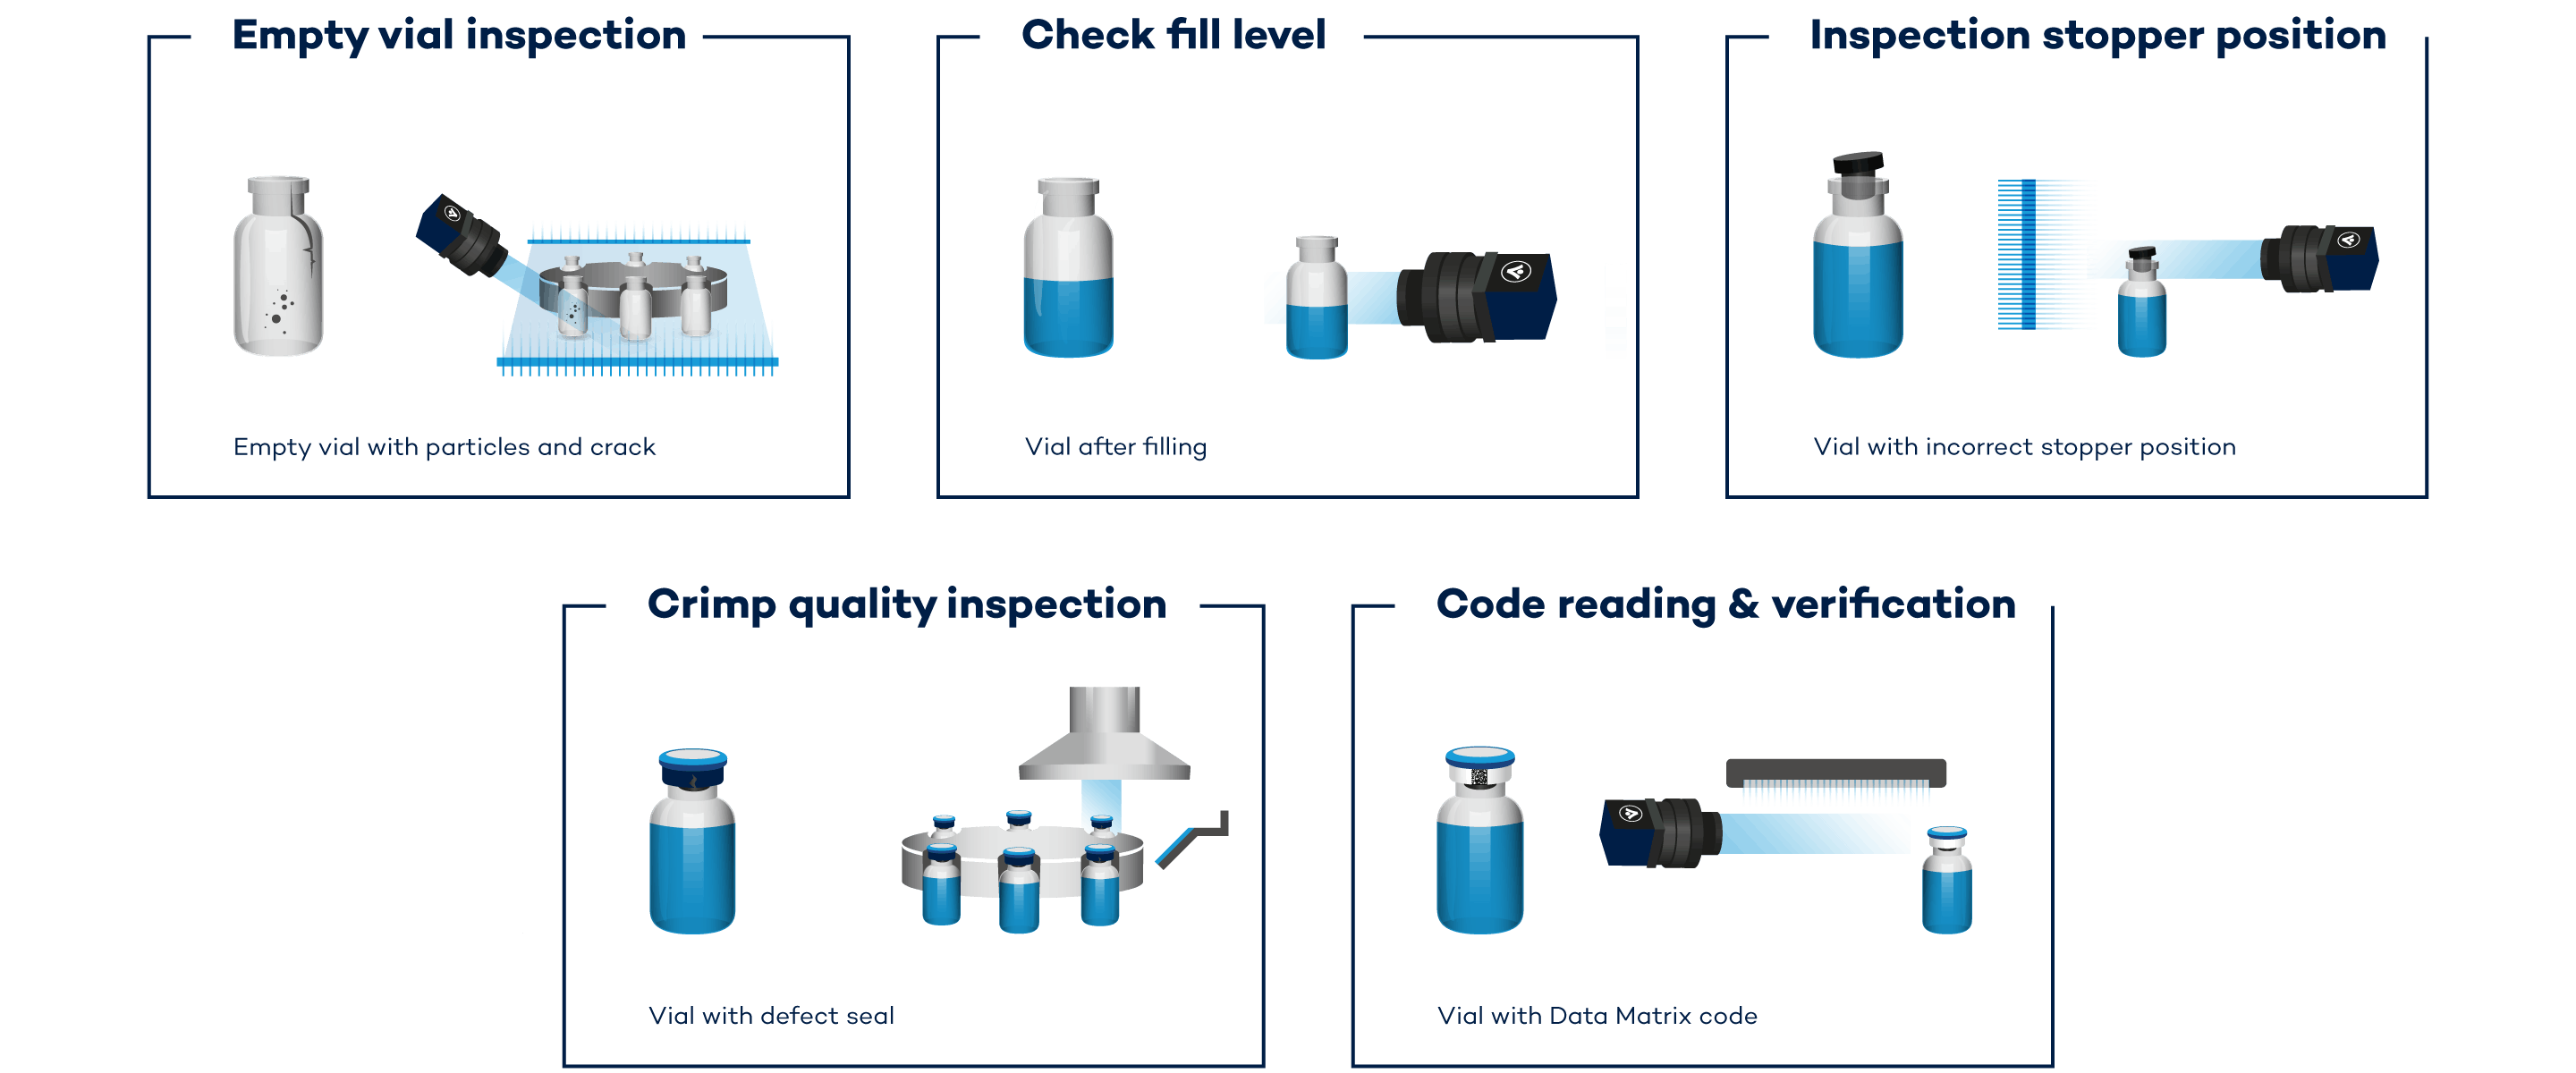 Process Controll in Vial Inspection